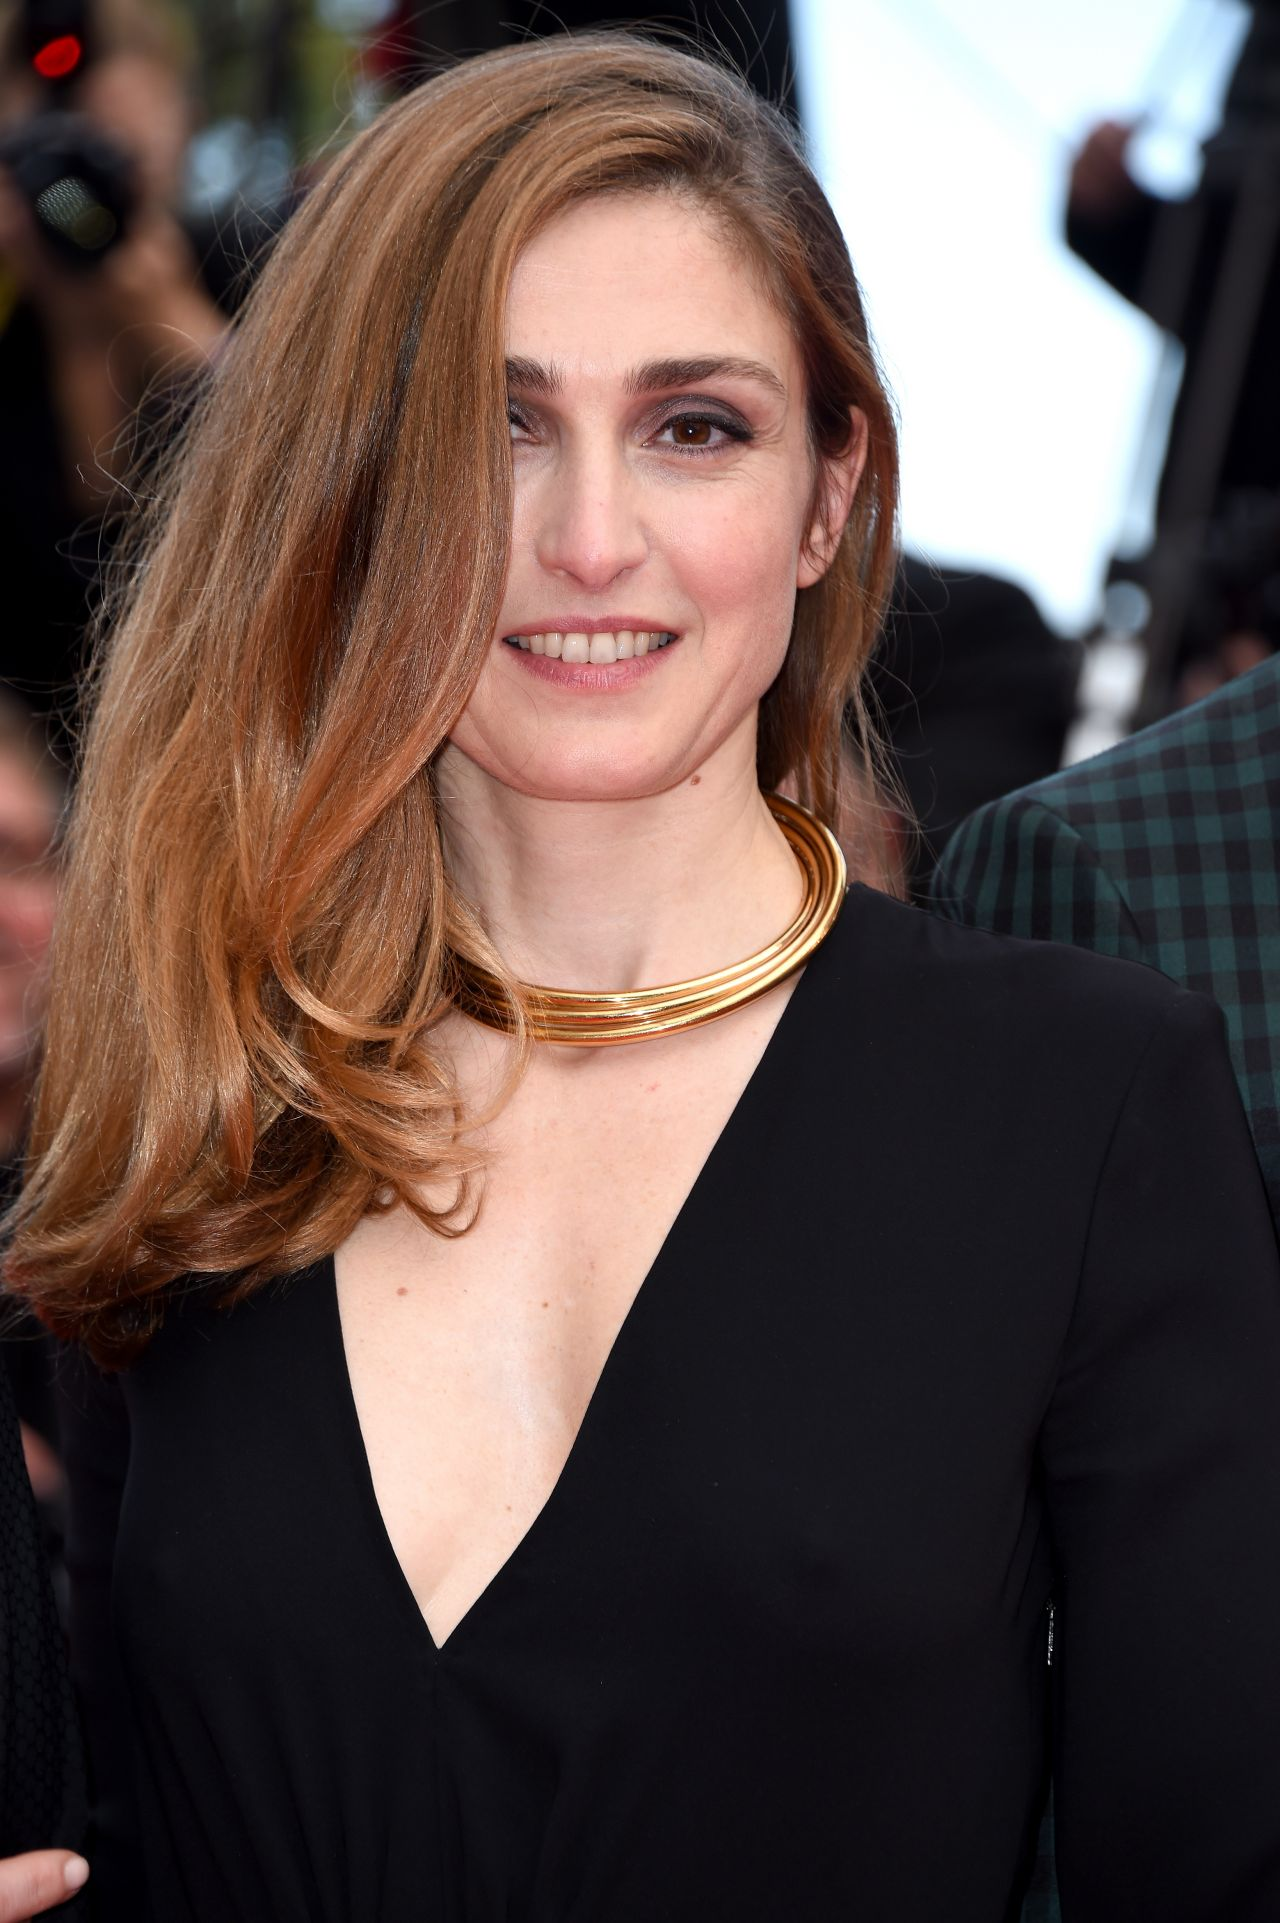 Julie Gayet Saint Laurent Premiere 2014 Cannes Film